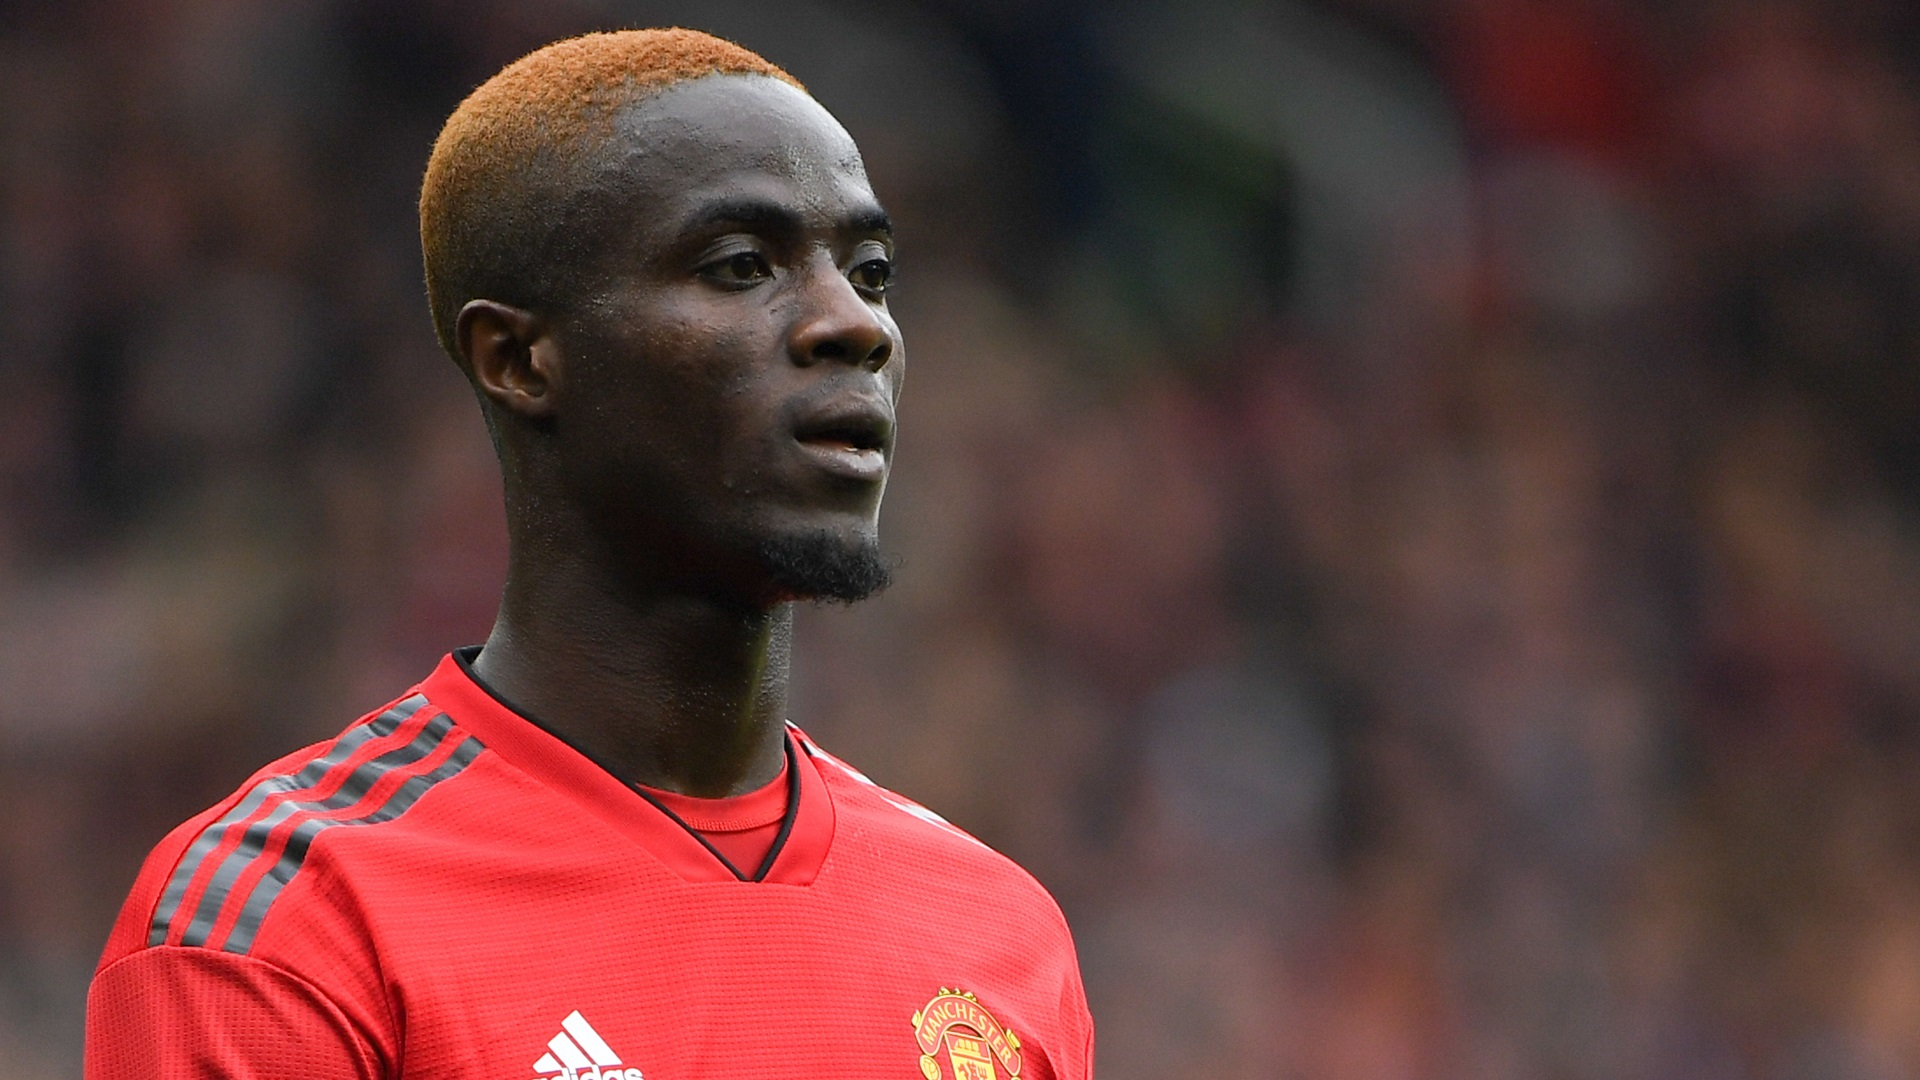 Bailly: Oliseh urges fans to pray for Manchester United star after latest injury